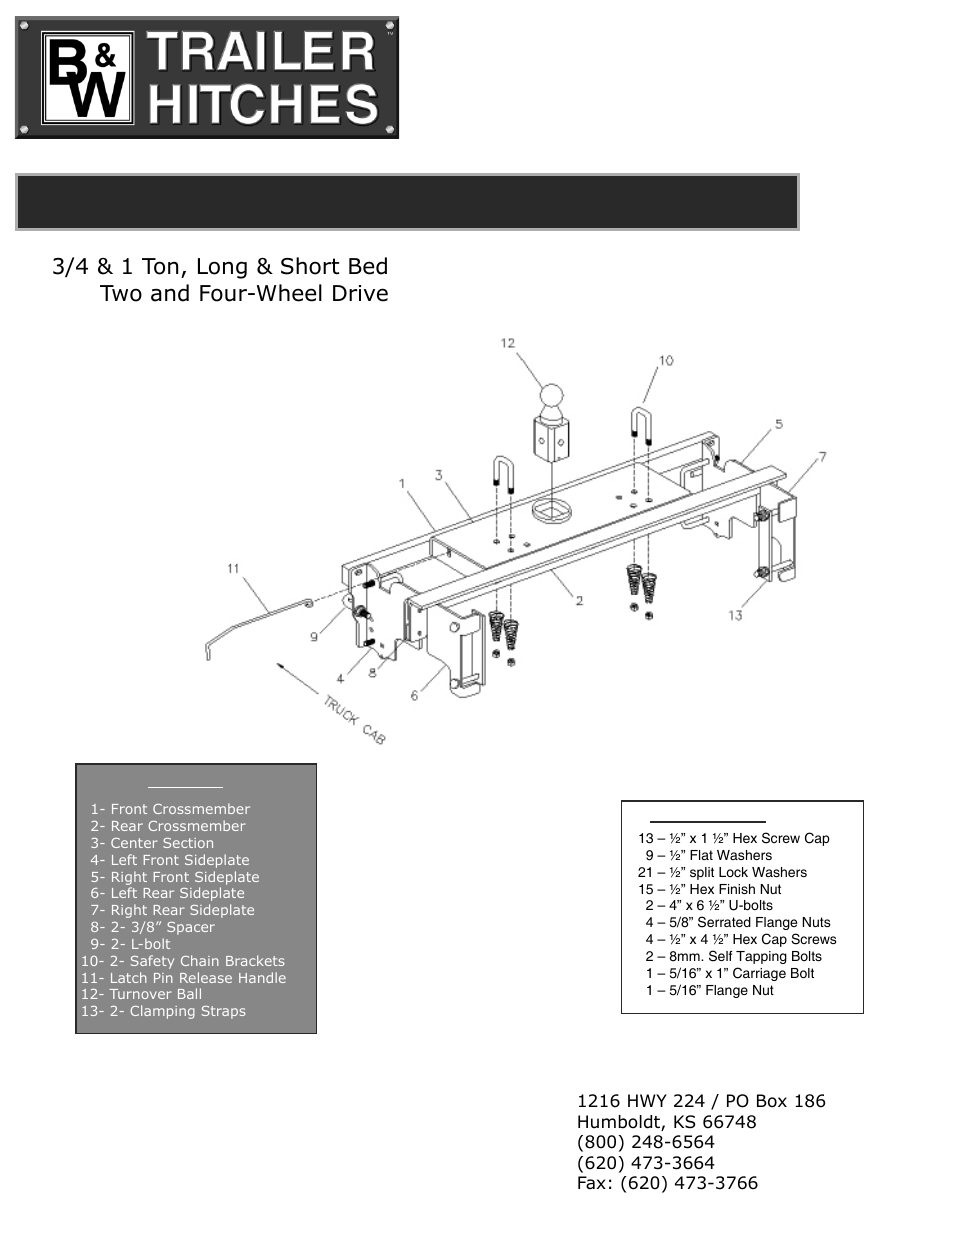 B&W Trailer Hitches Turnoverball Model 1303 (Dodge) User Manual | 4 pages